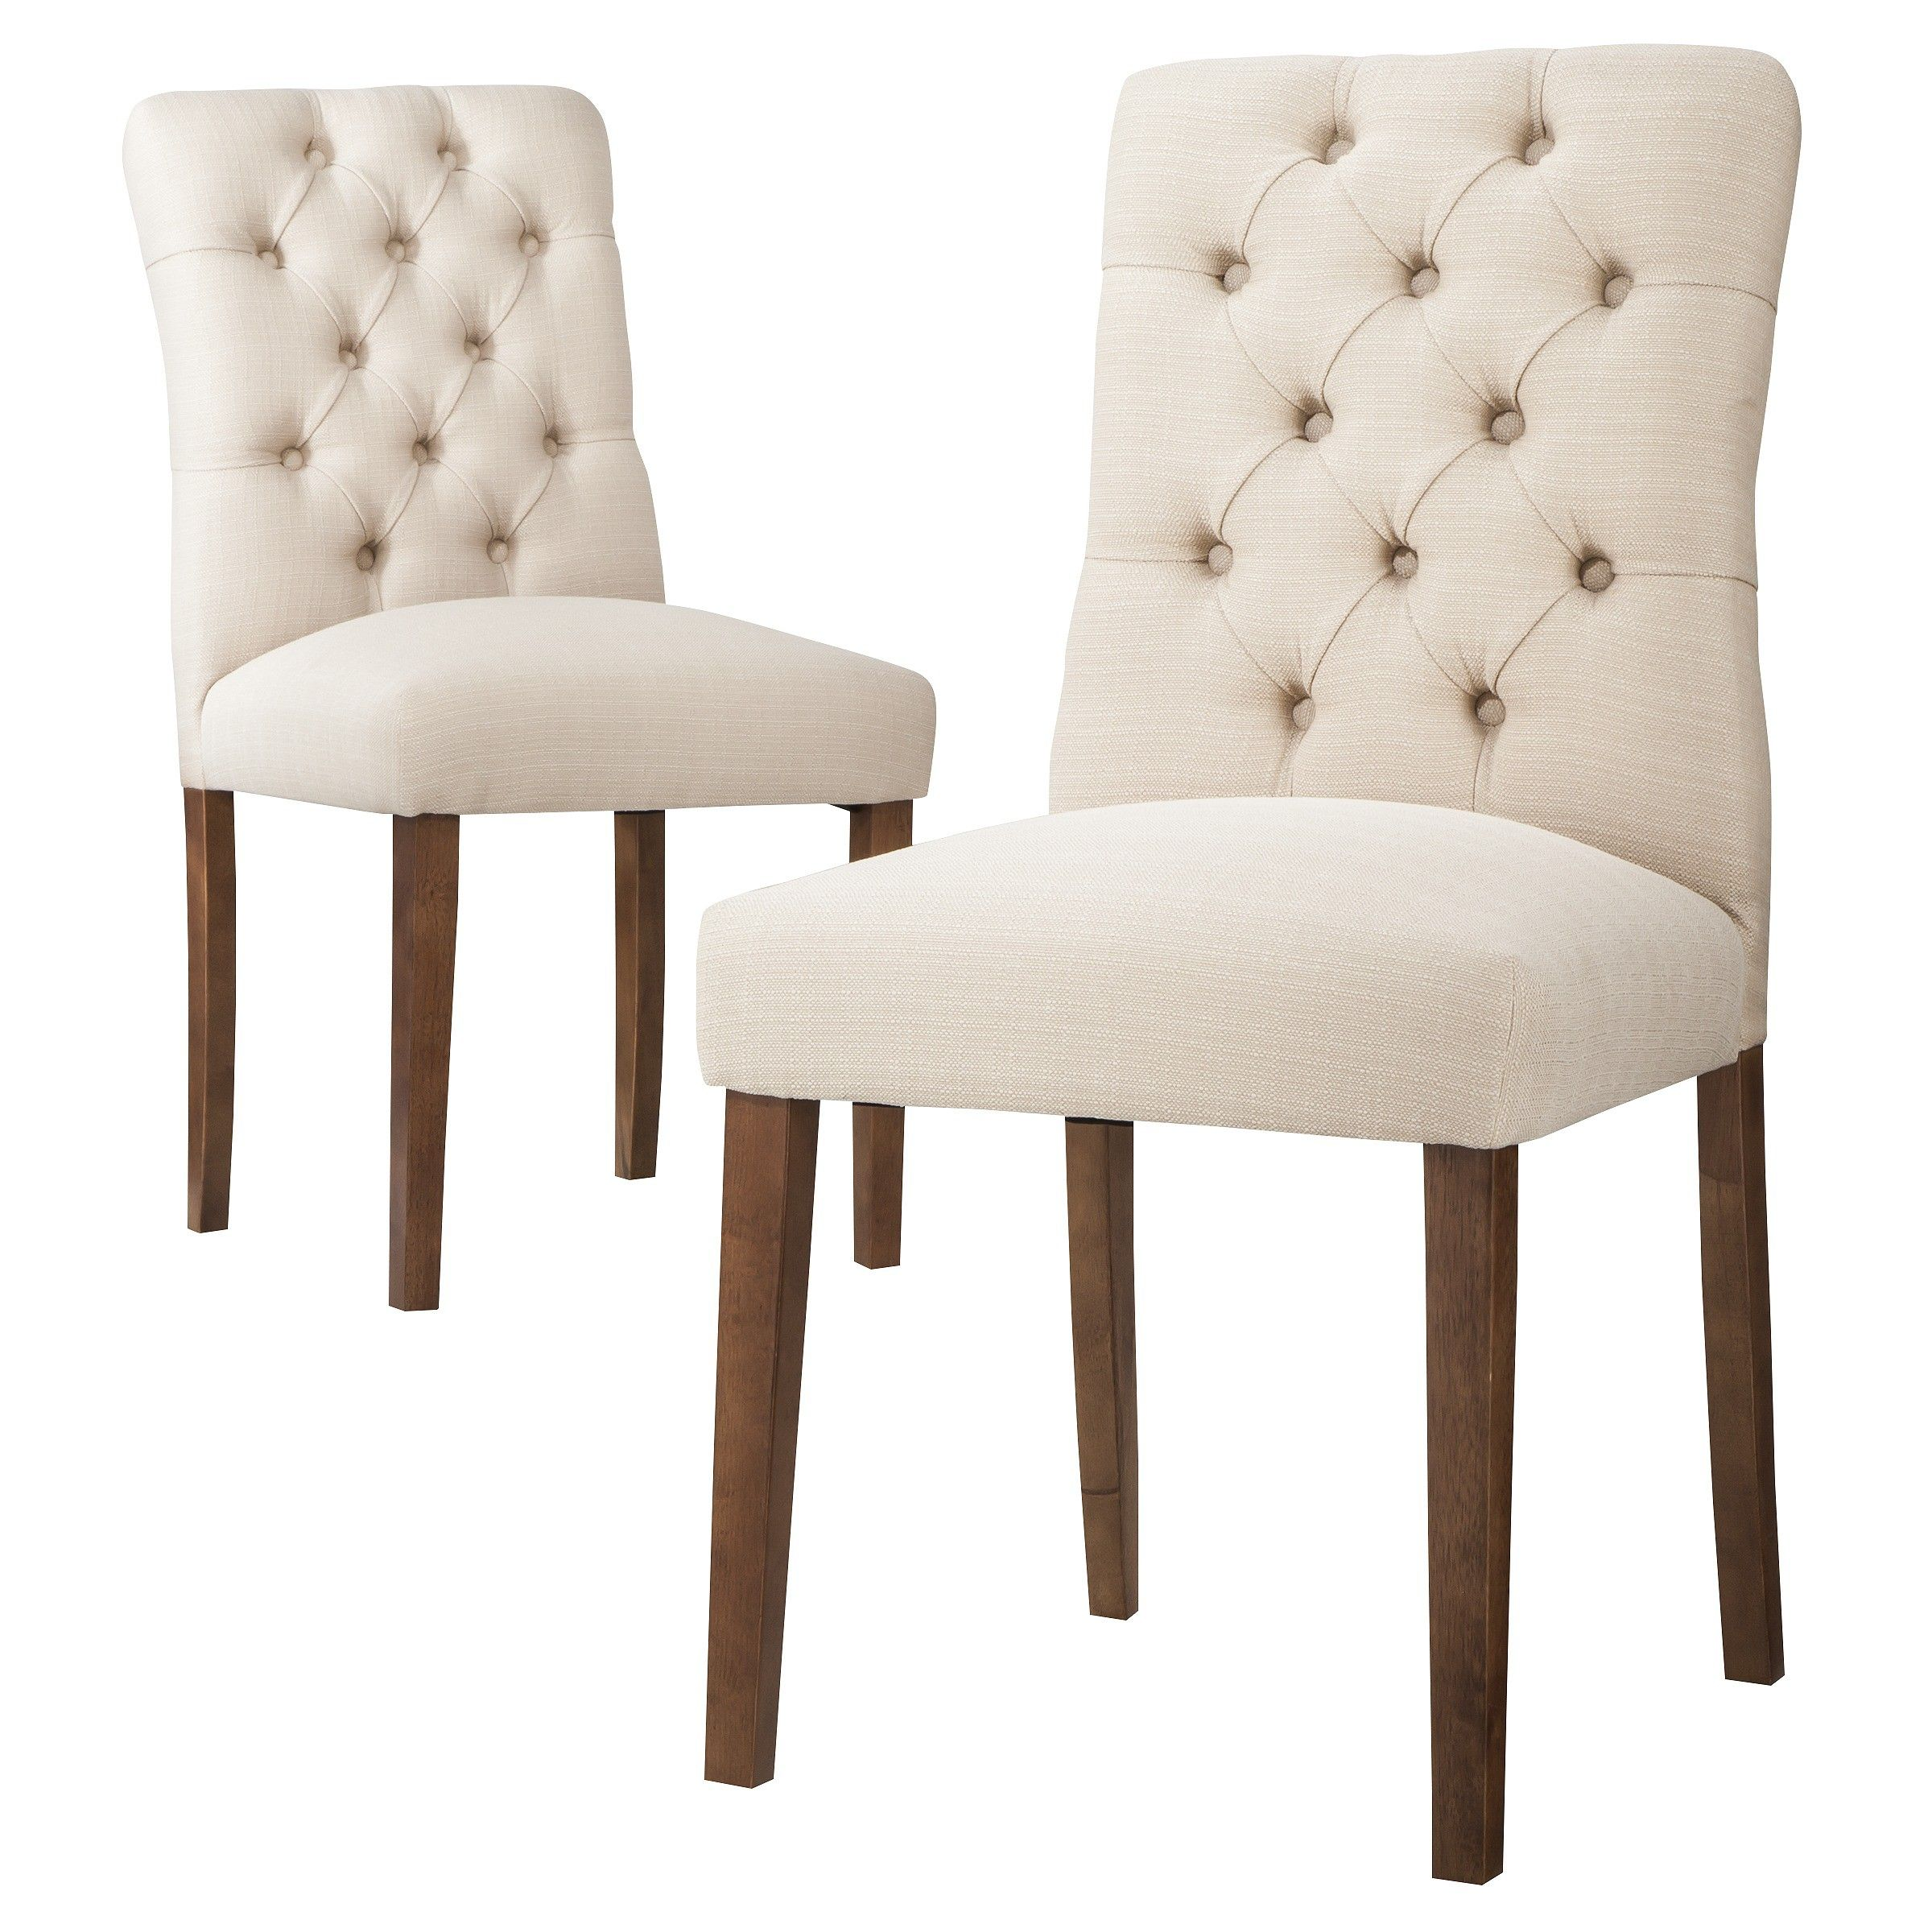 120 ThresholdTM Brookline Tufted Dining Chair